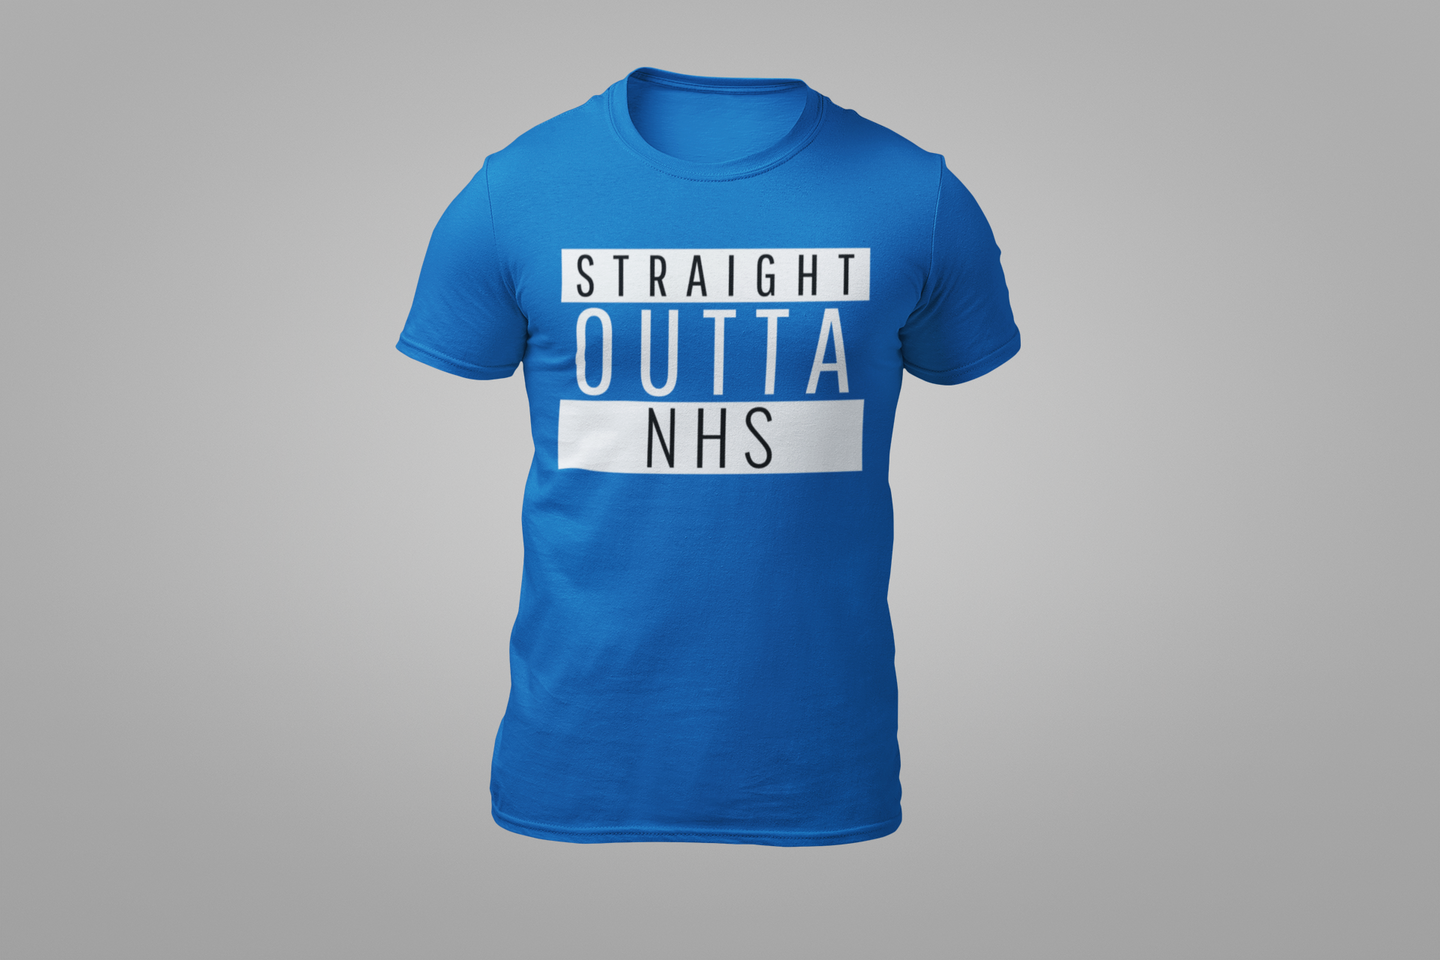 STRAIGHT OUTTA NHS Tee